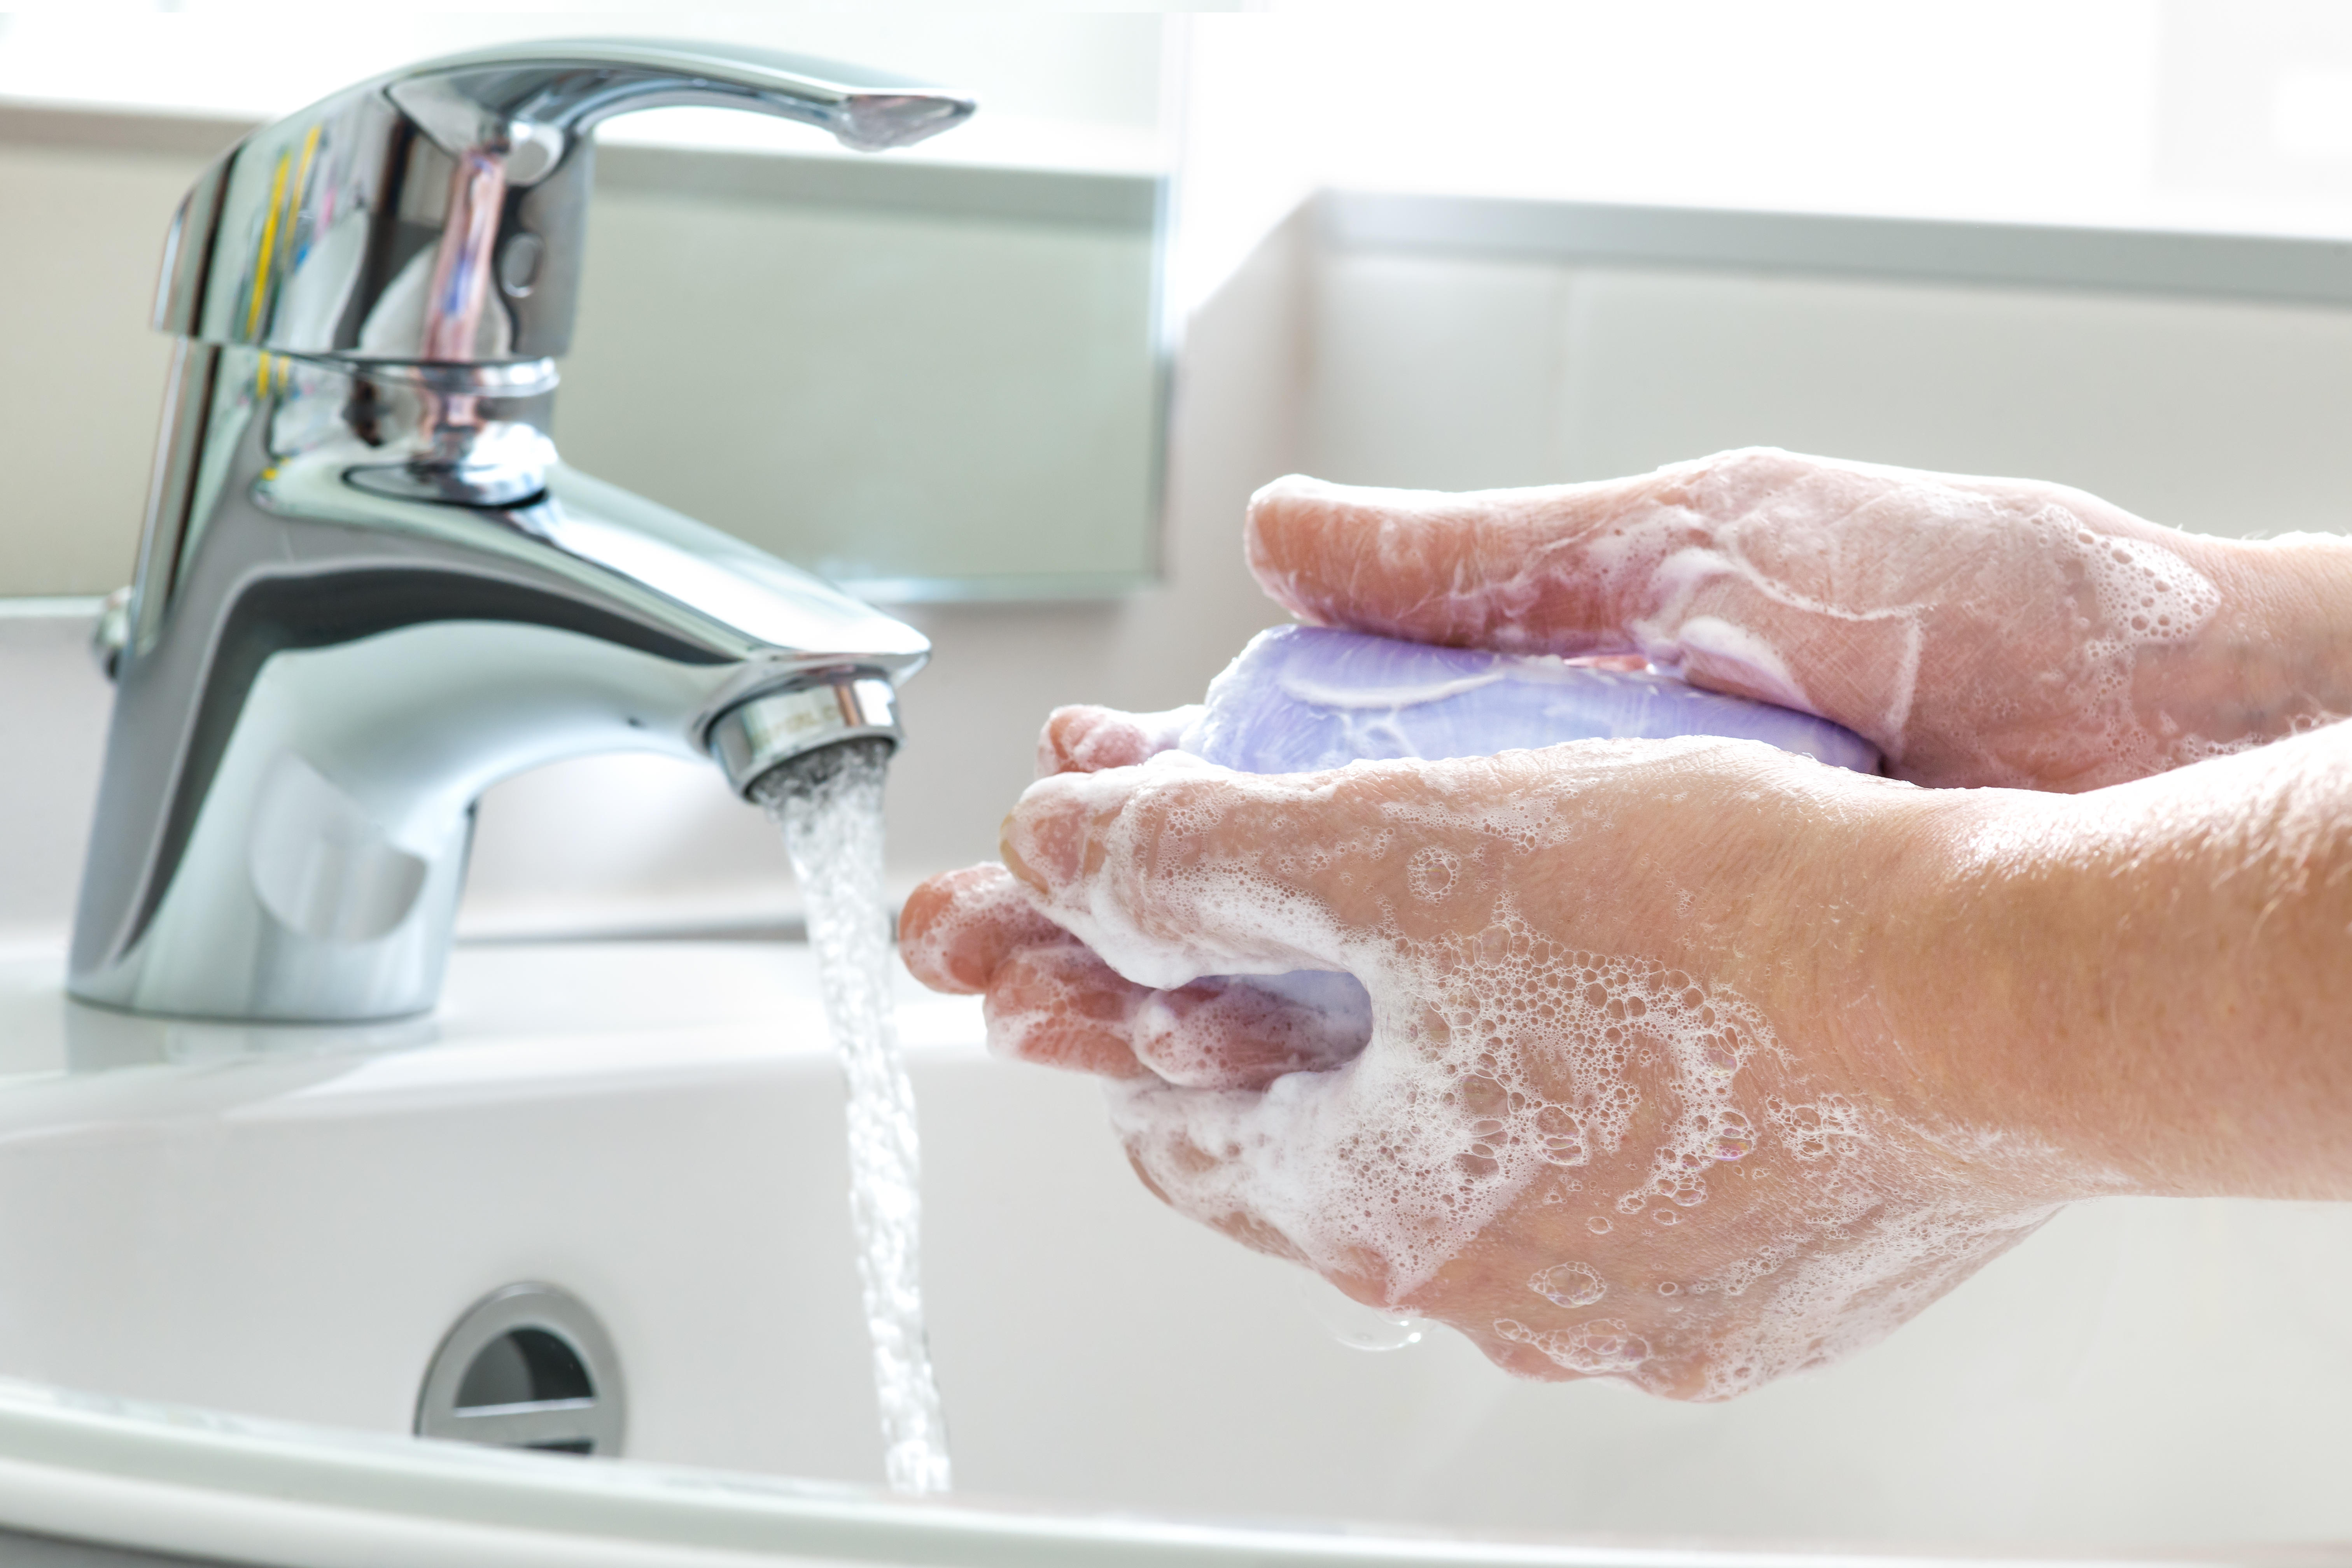 Their Washing Pictures Soap Hands People